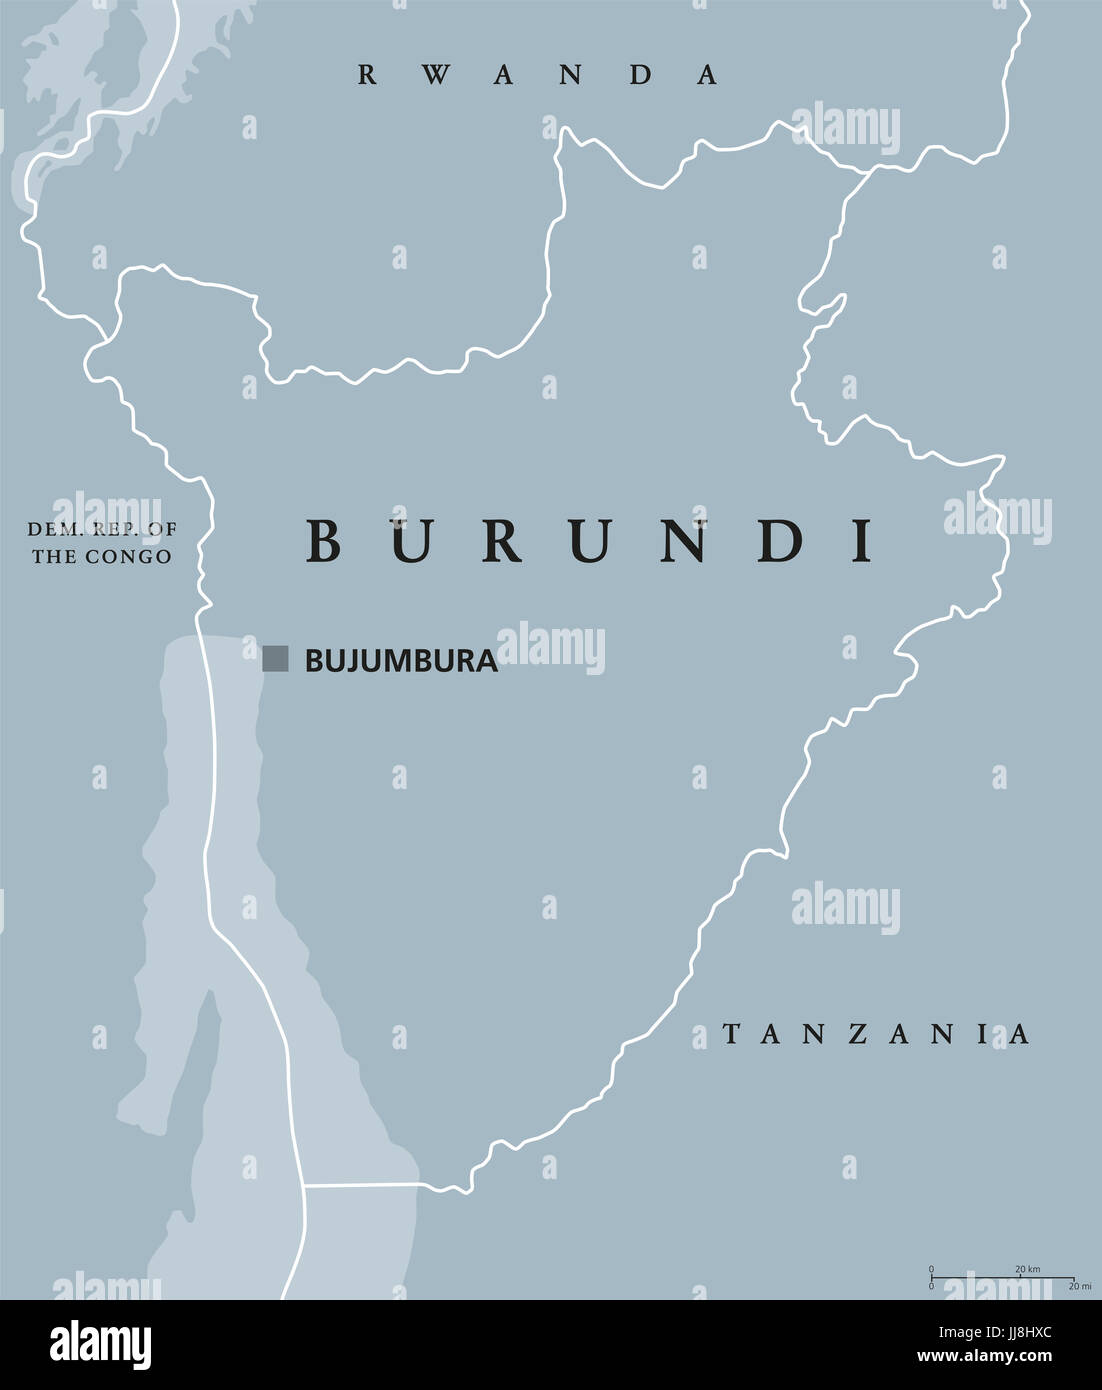 Burundi Political Map With Capital Bujumbura And International - bujumbura map